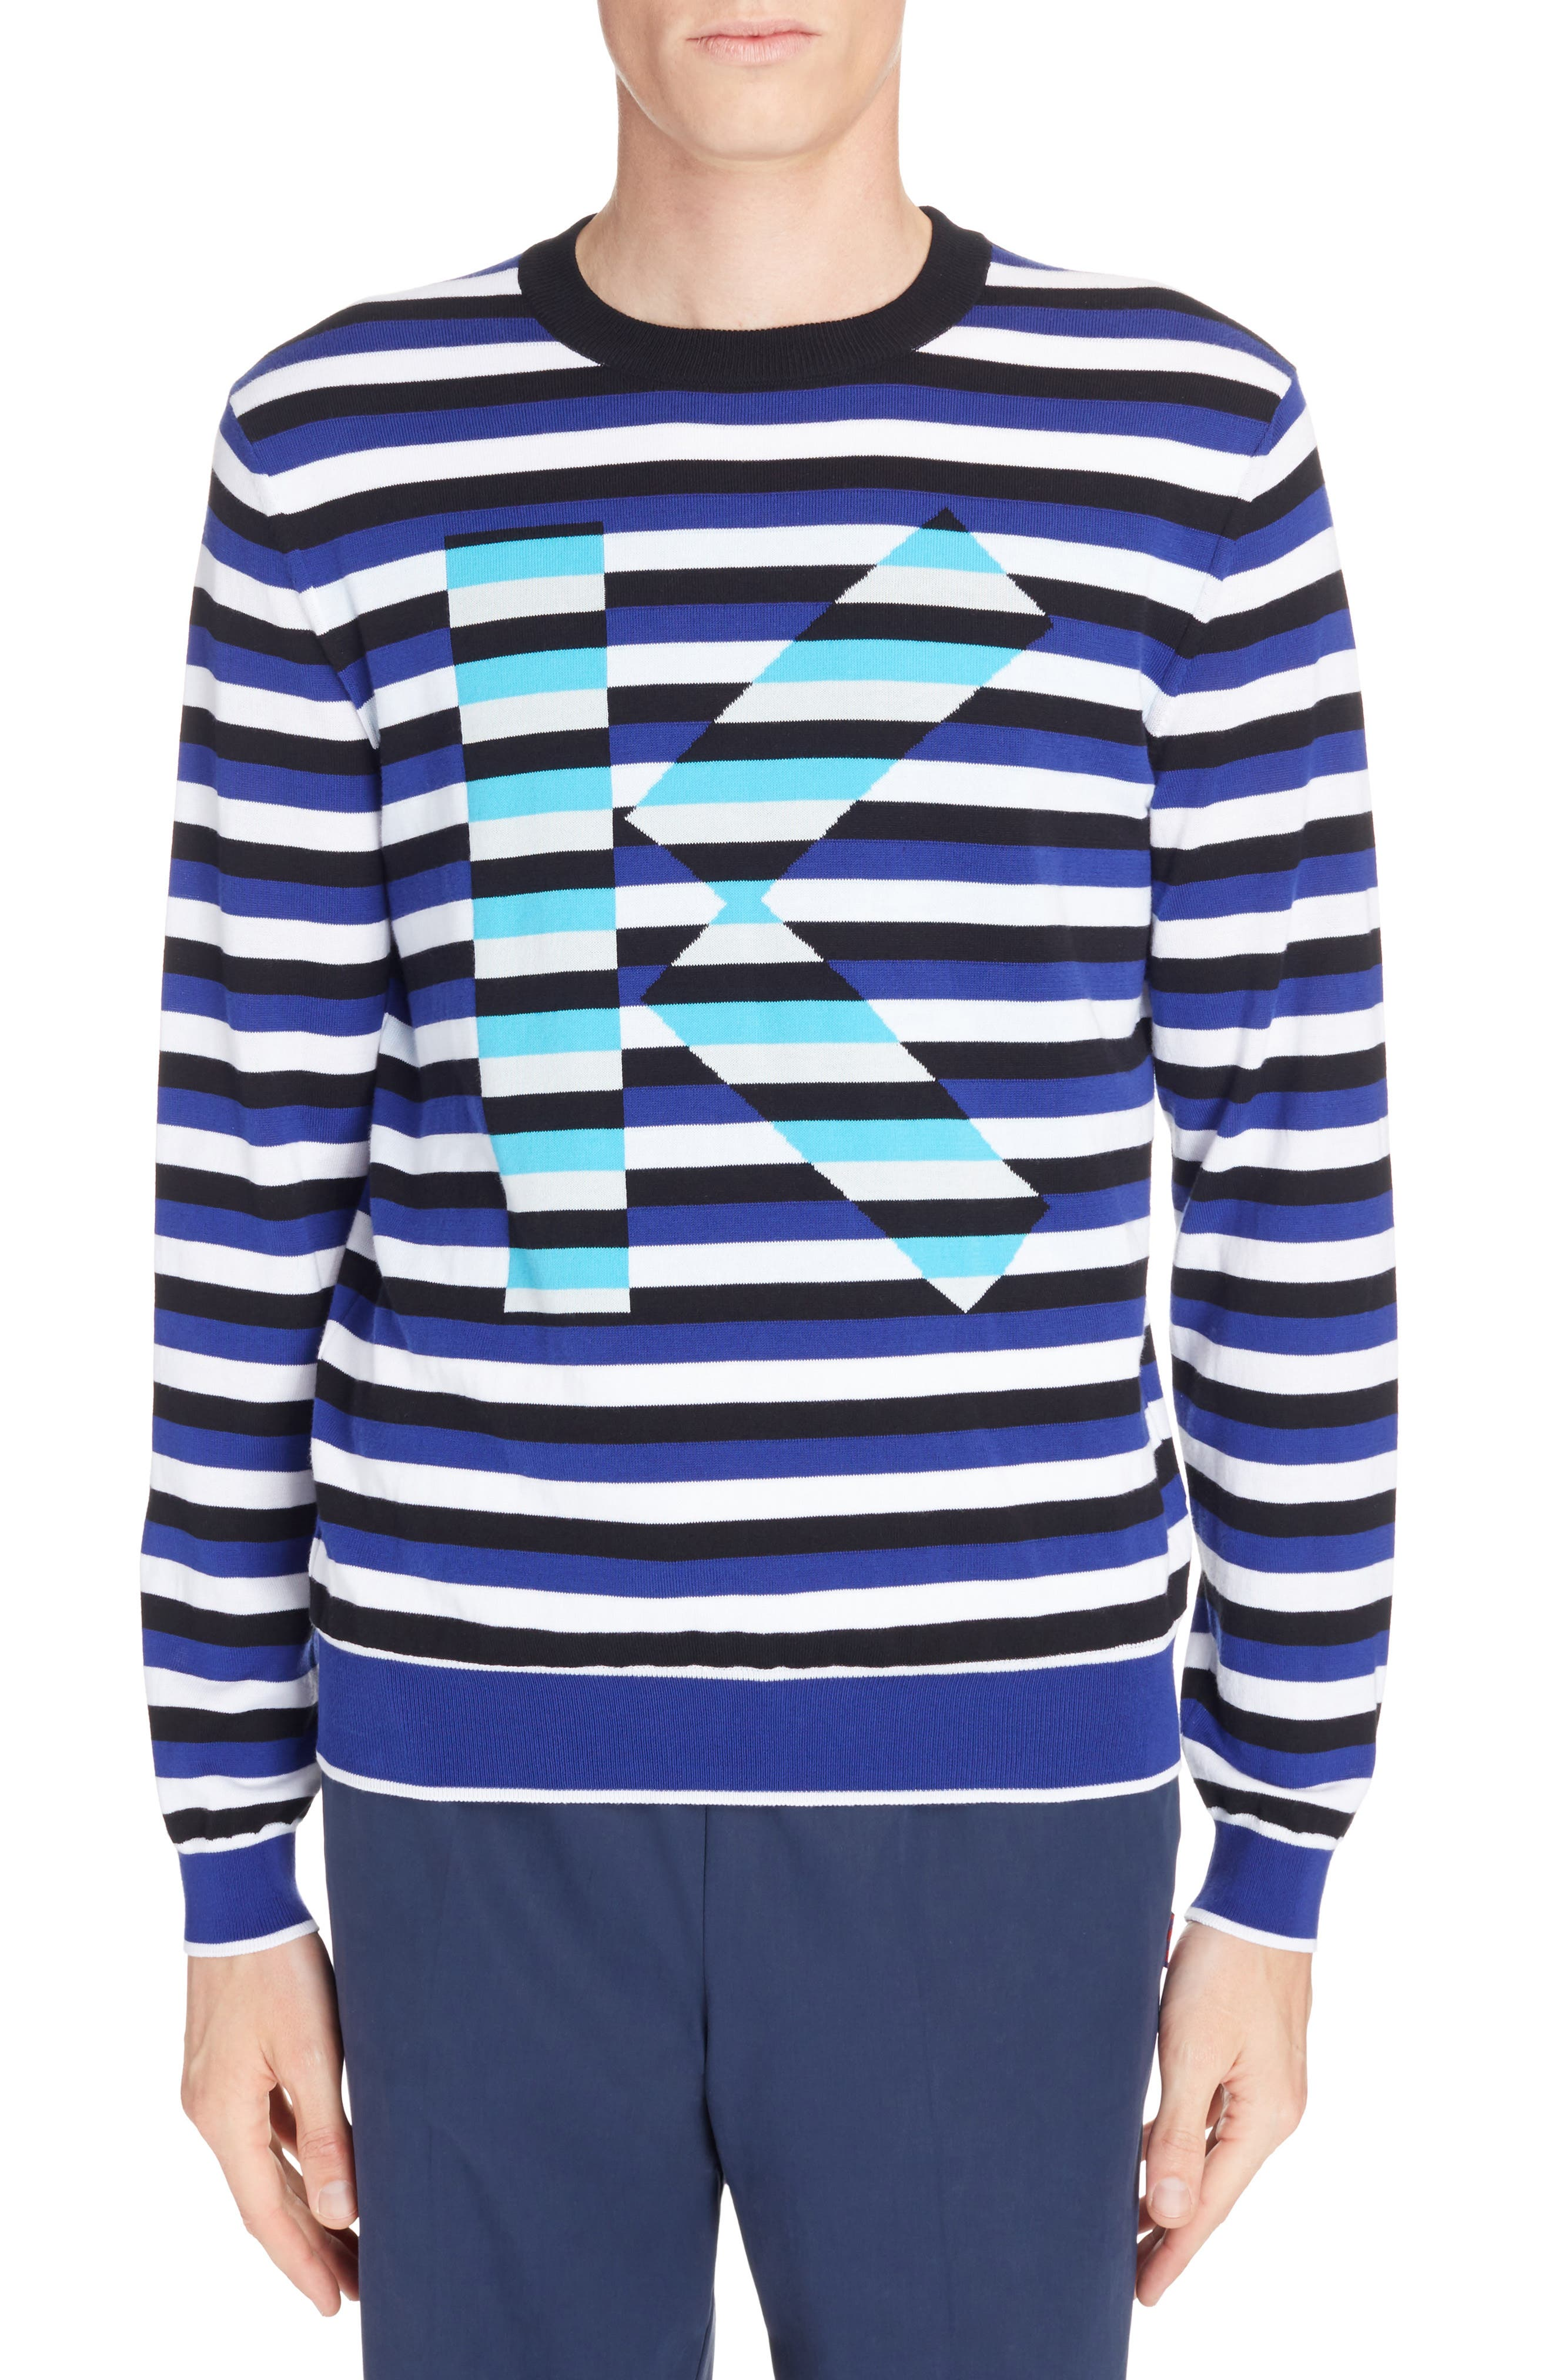 Large K Stripe Sweater,                         Main,                         color, French Blue